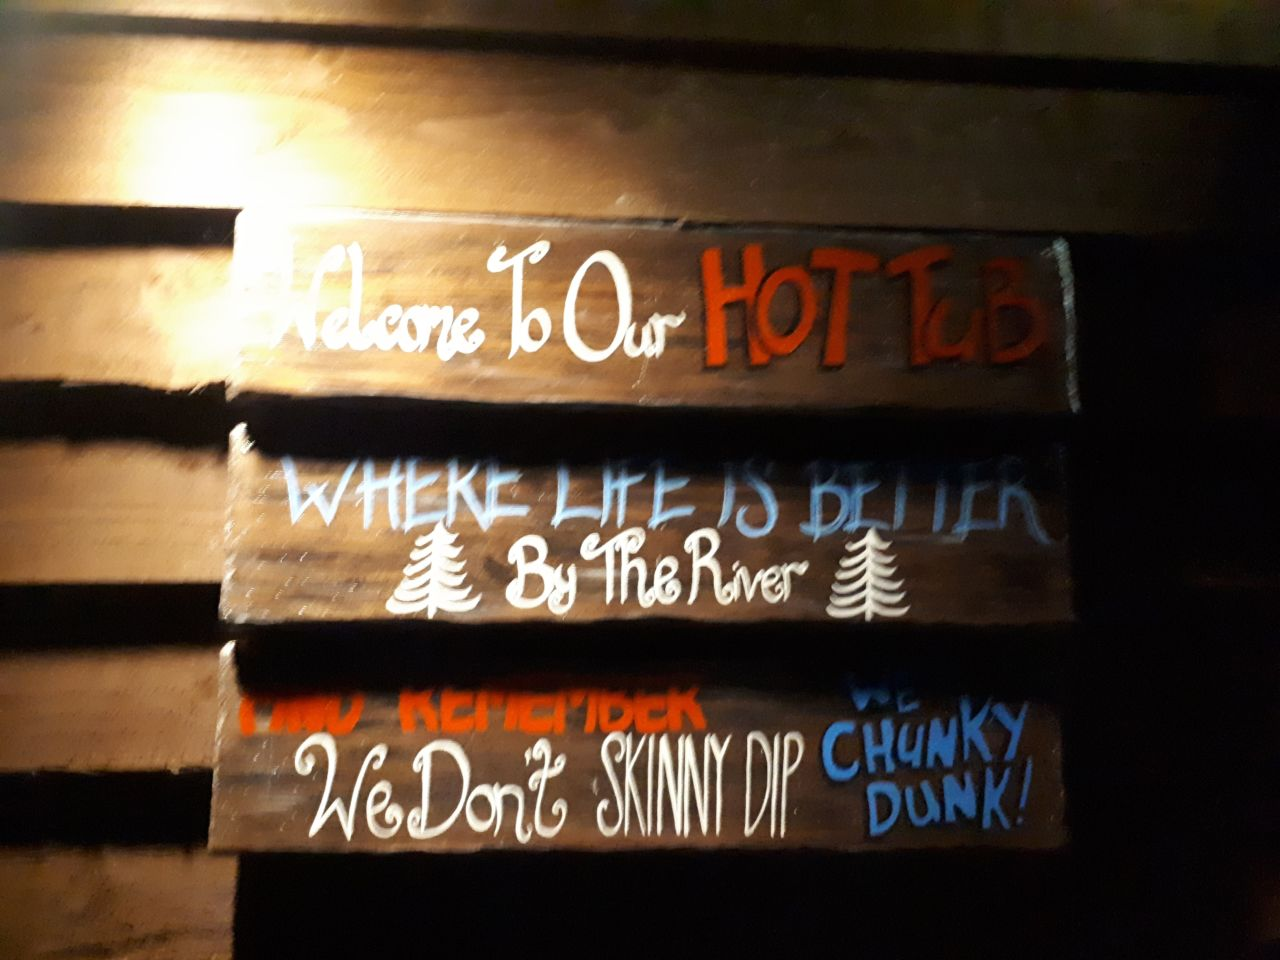 Welcome to our hot tub sign